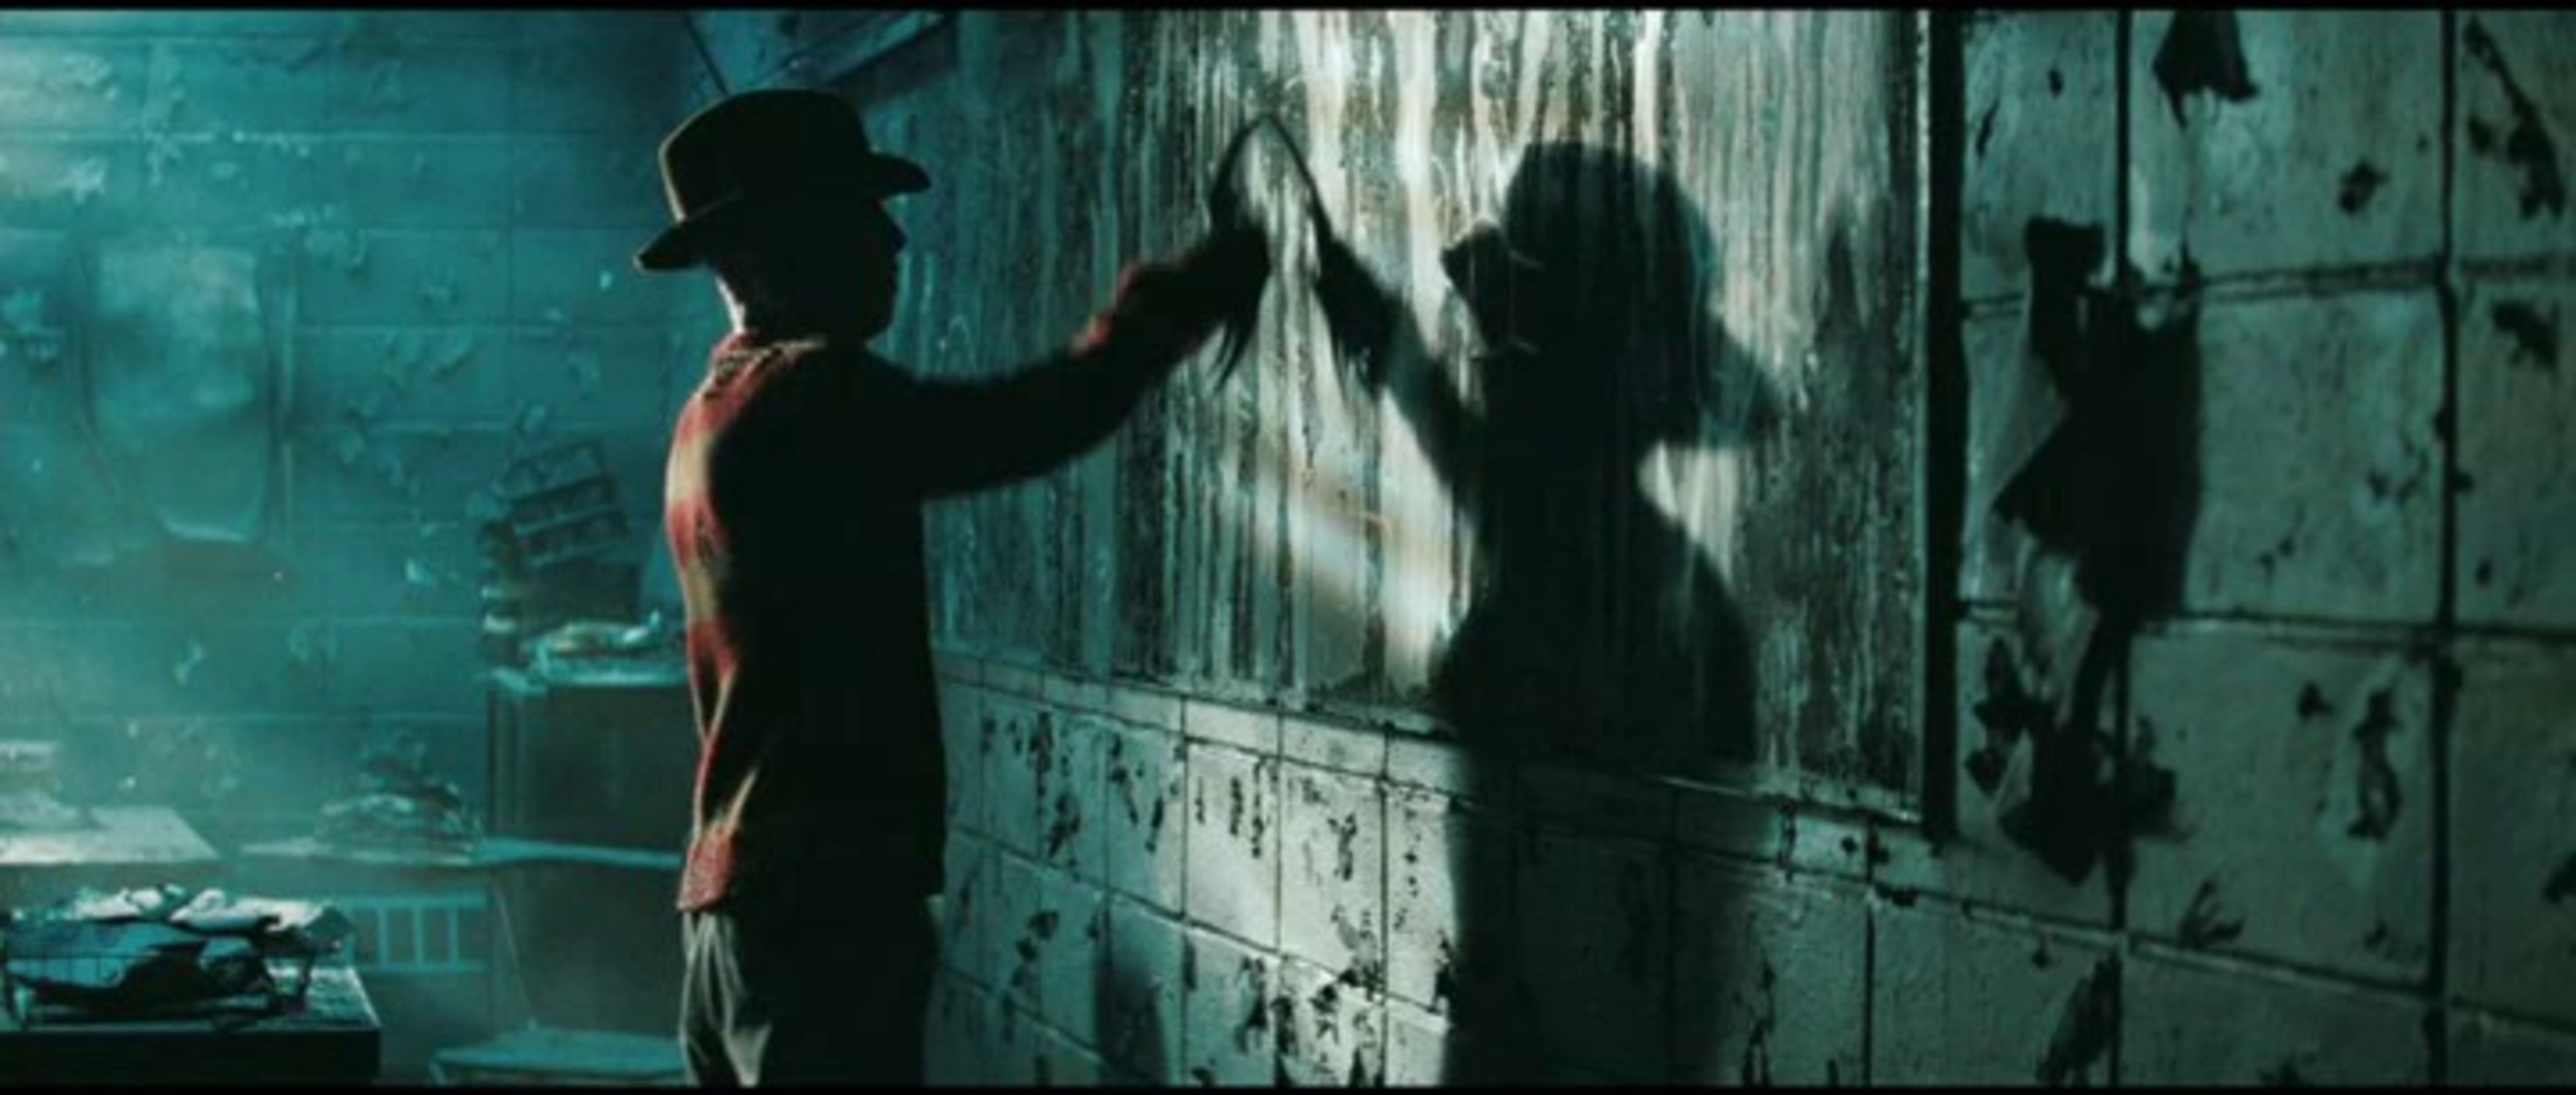 nightmare on elm street trailer deutsch